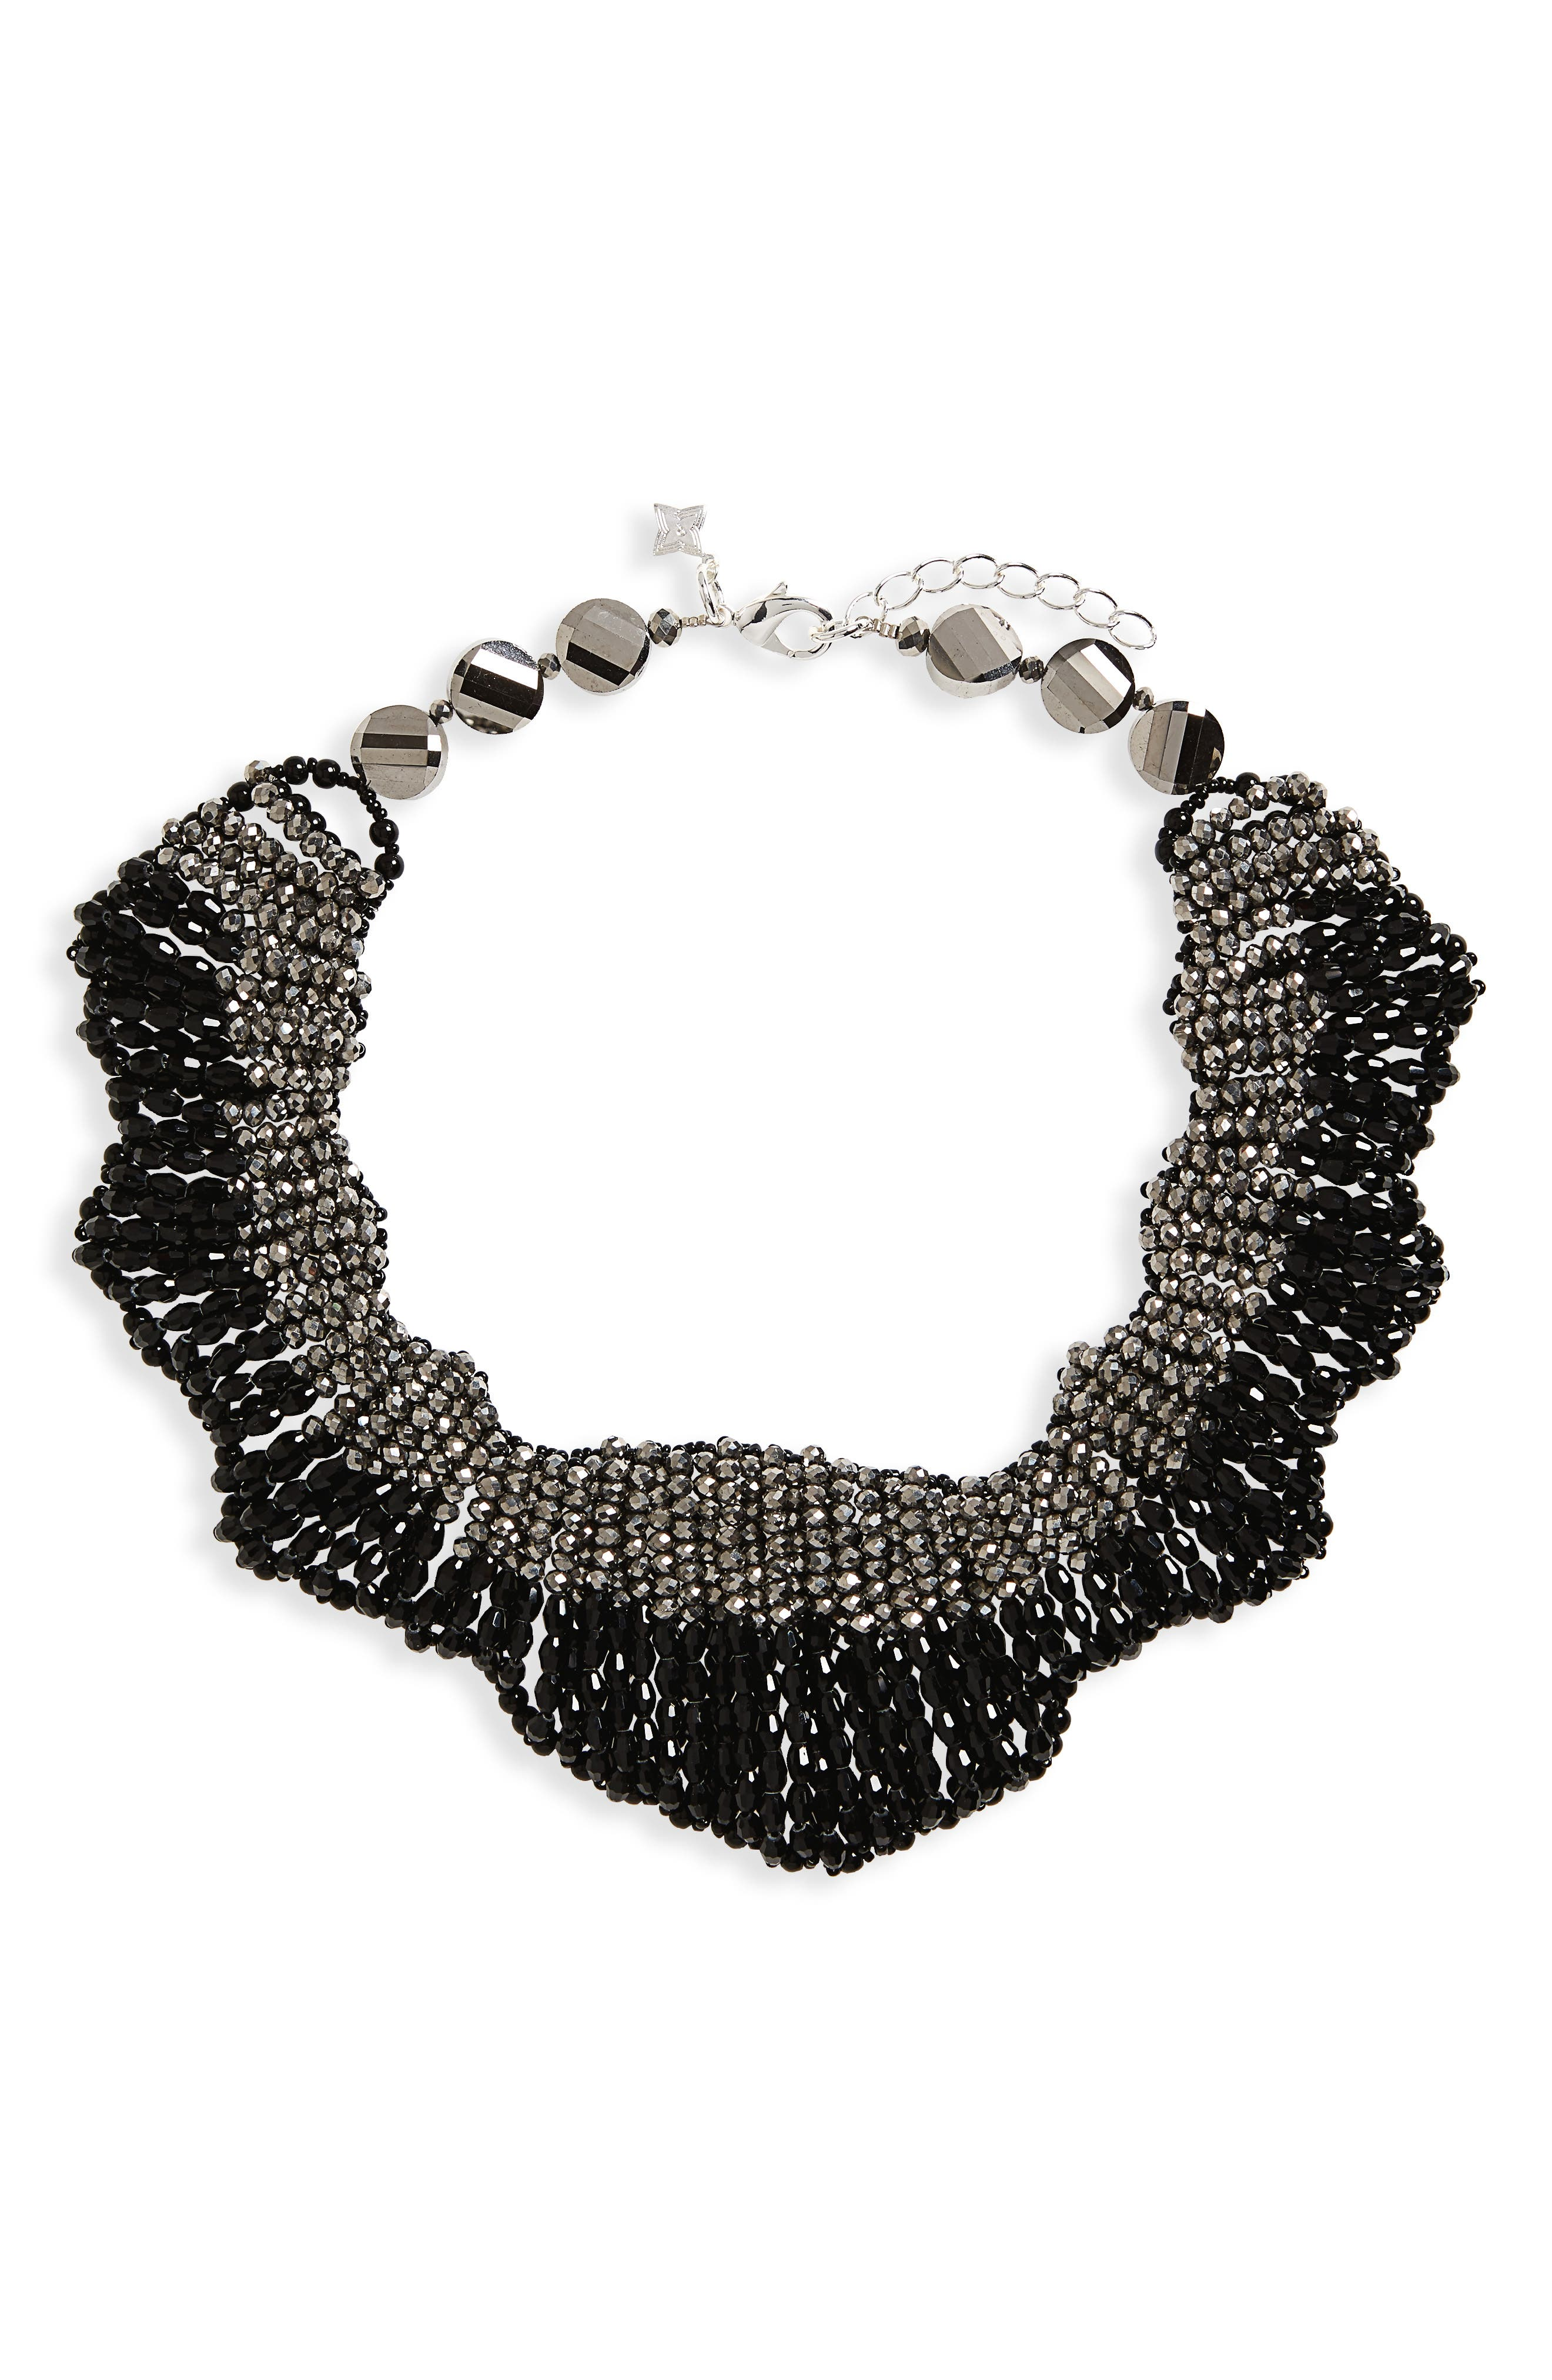 Beaded Statement Collar Necklace,                             Main thumbnail 1, color,                             Black